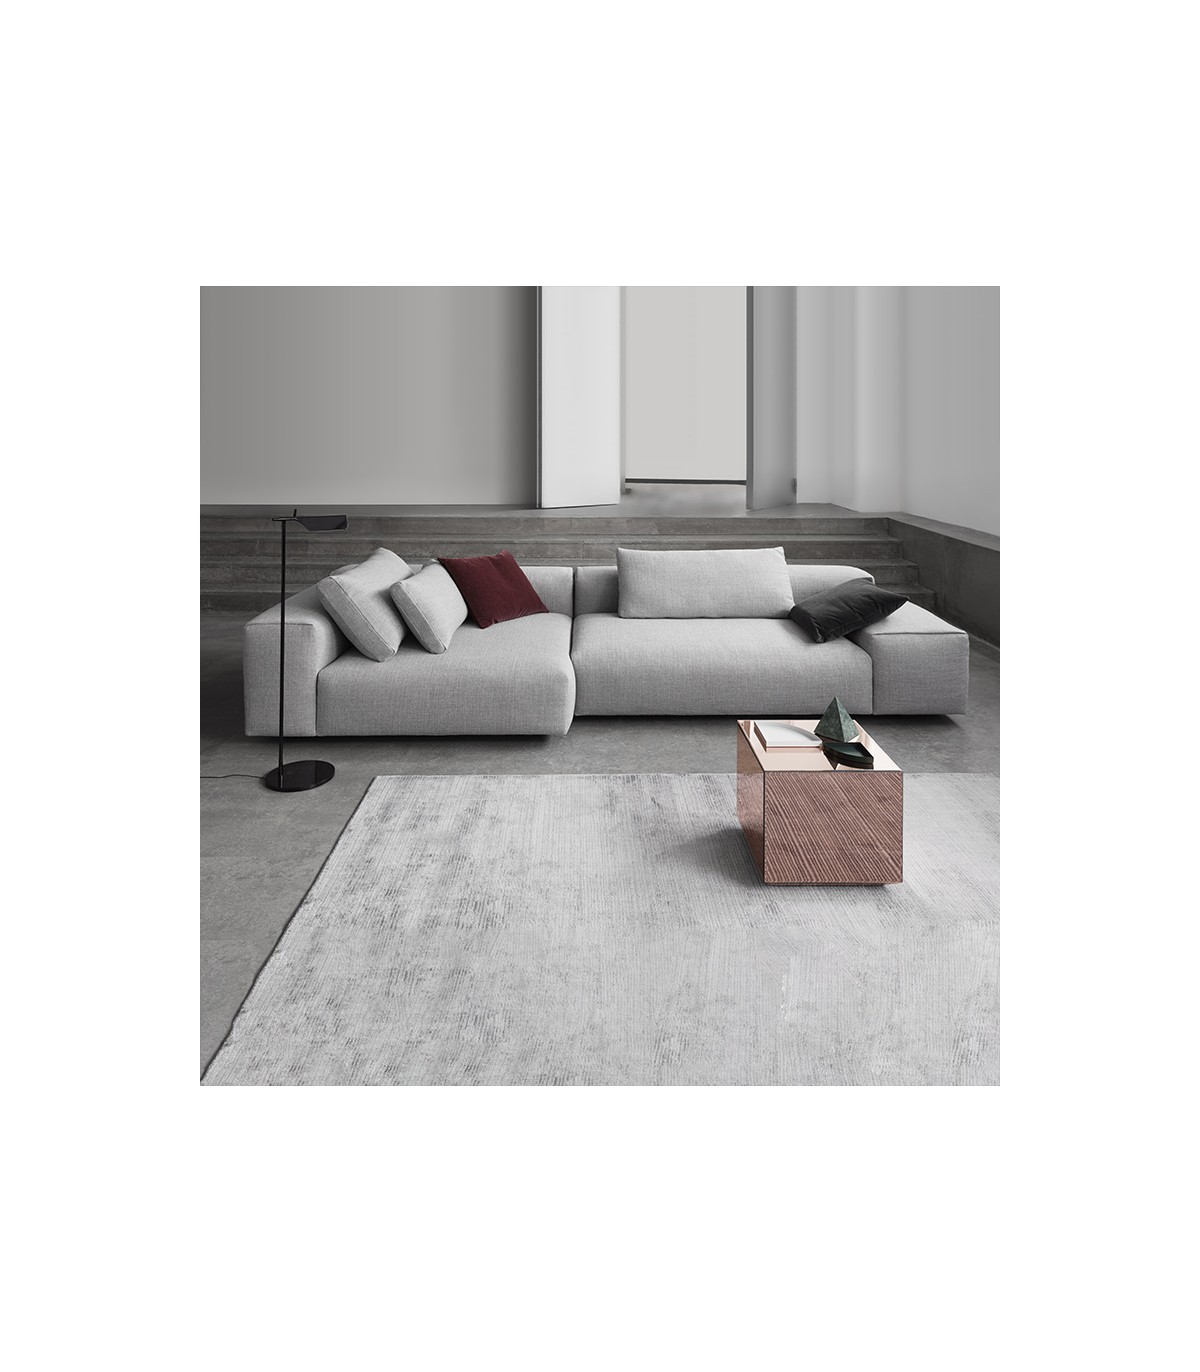 Wendelbo Raft Sofa Denmark Sofa Contemporary Sofa Singapore